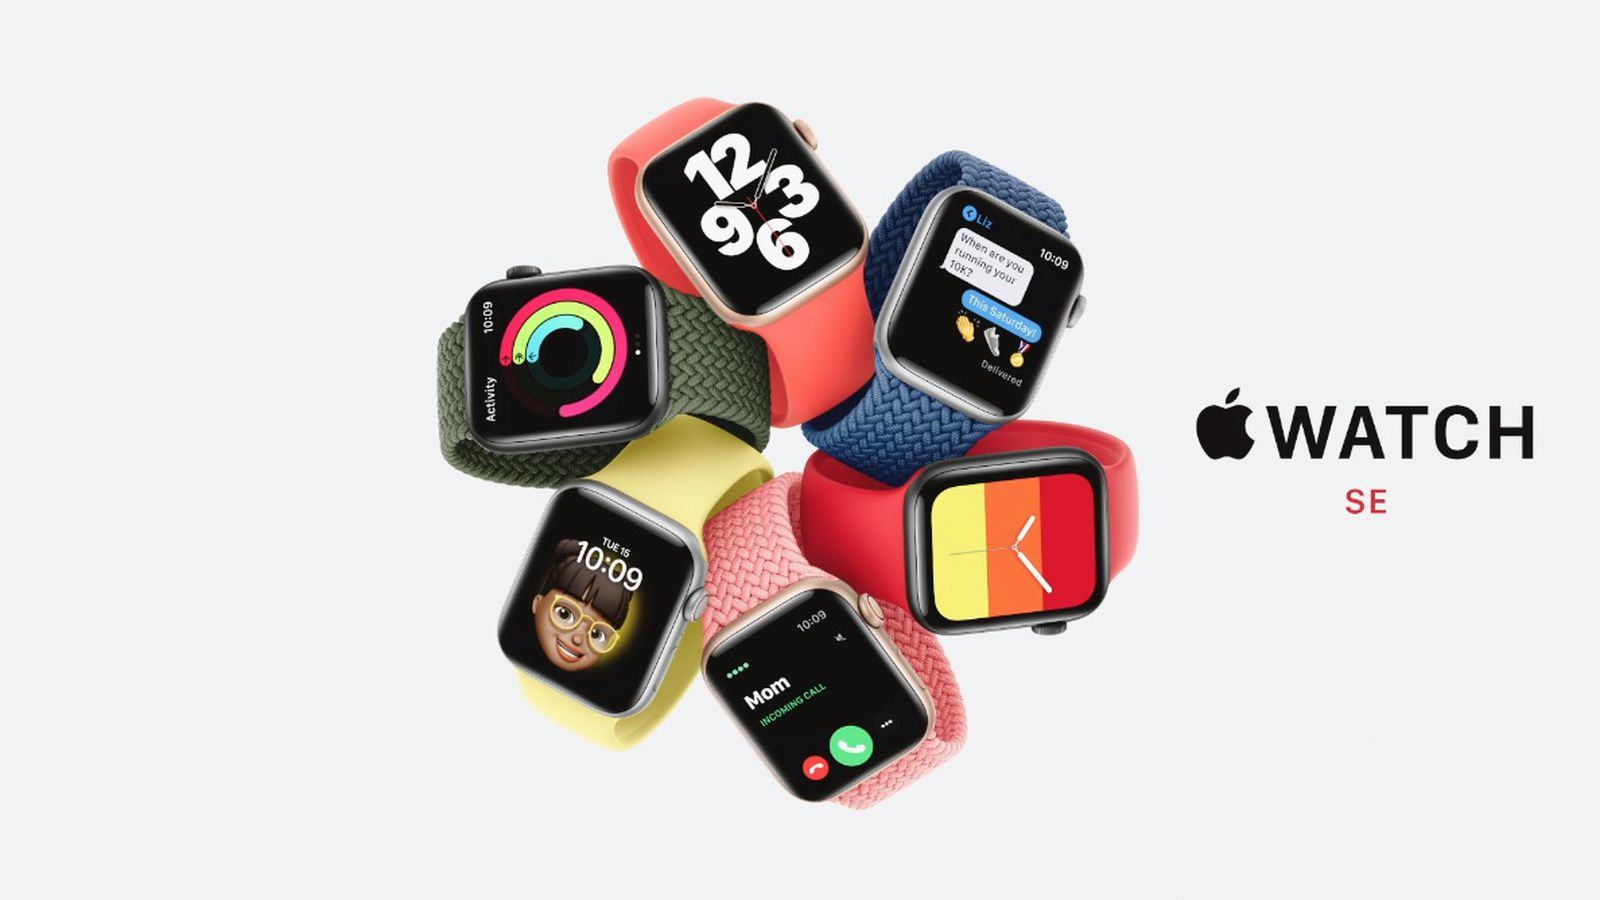 Lower-Cost Apple Watch SE Unveiled With Series 6 Design, Lacks Features  Like ECG and Blood Oxygen Tracking - MacRumors